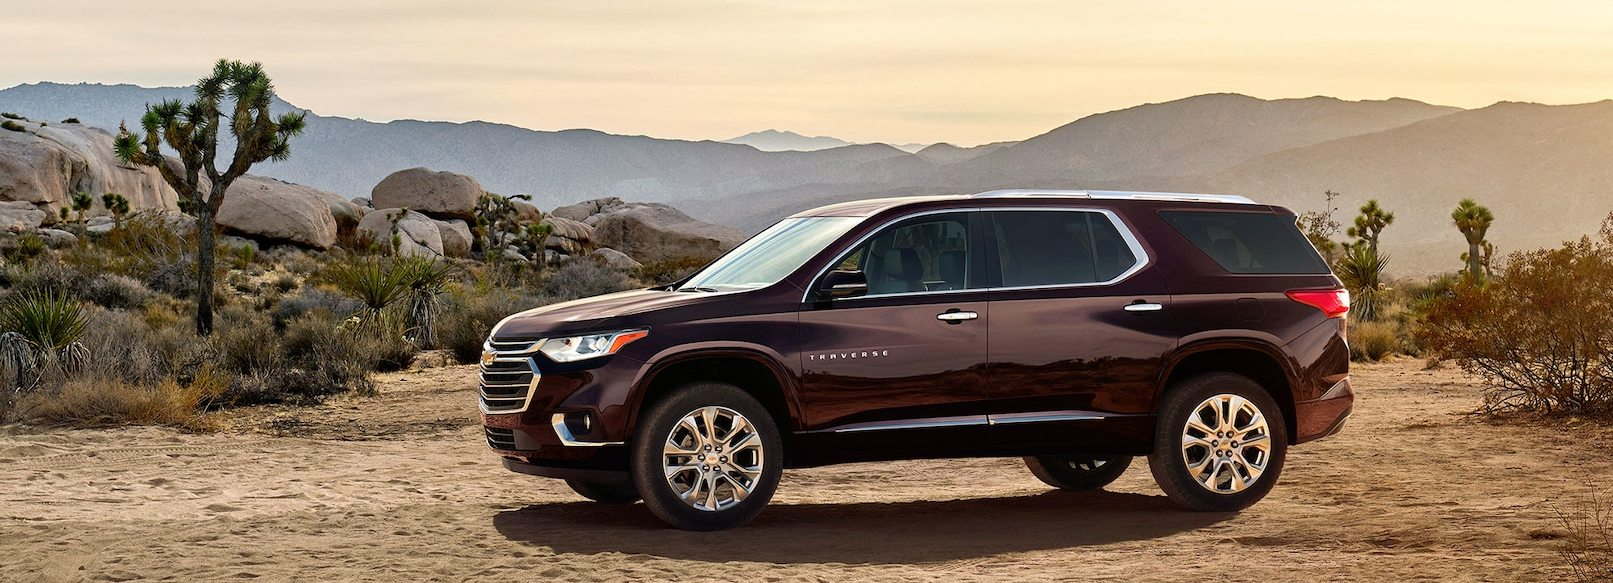 2020 Chevrolet Traverse for Sale near San Marcos, CA